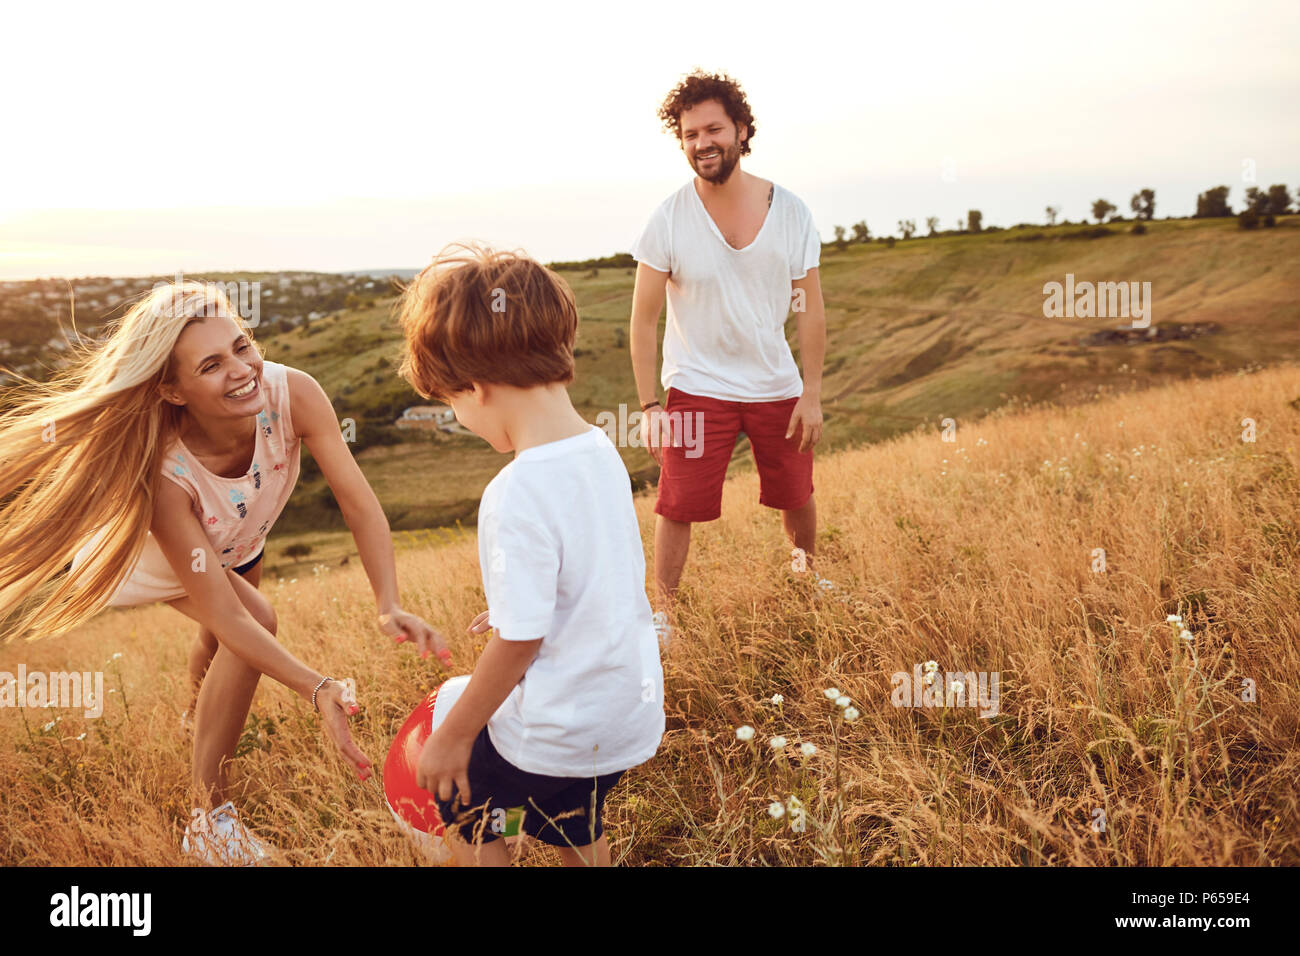 Happy family having fun playing at sunset in nature. - Stock Image